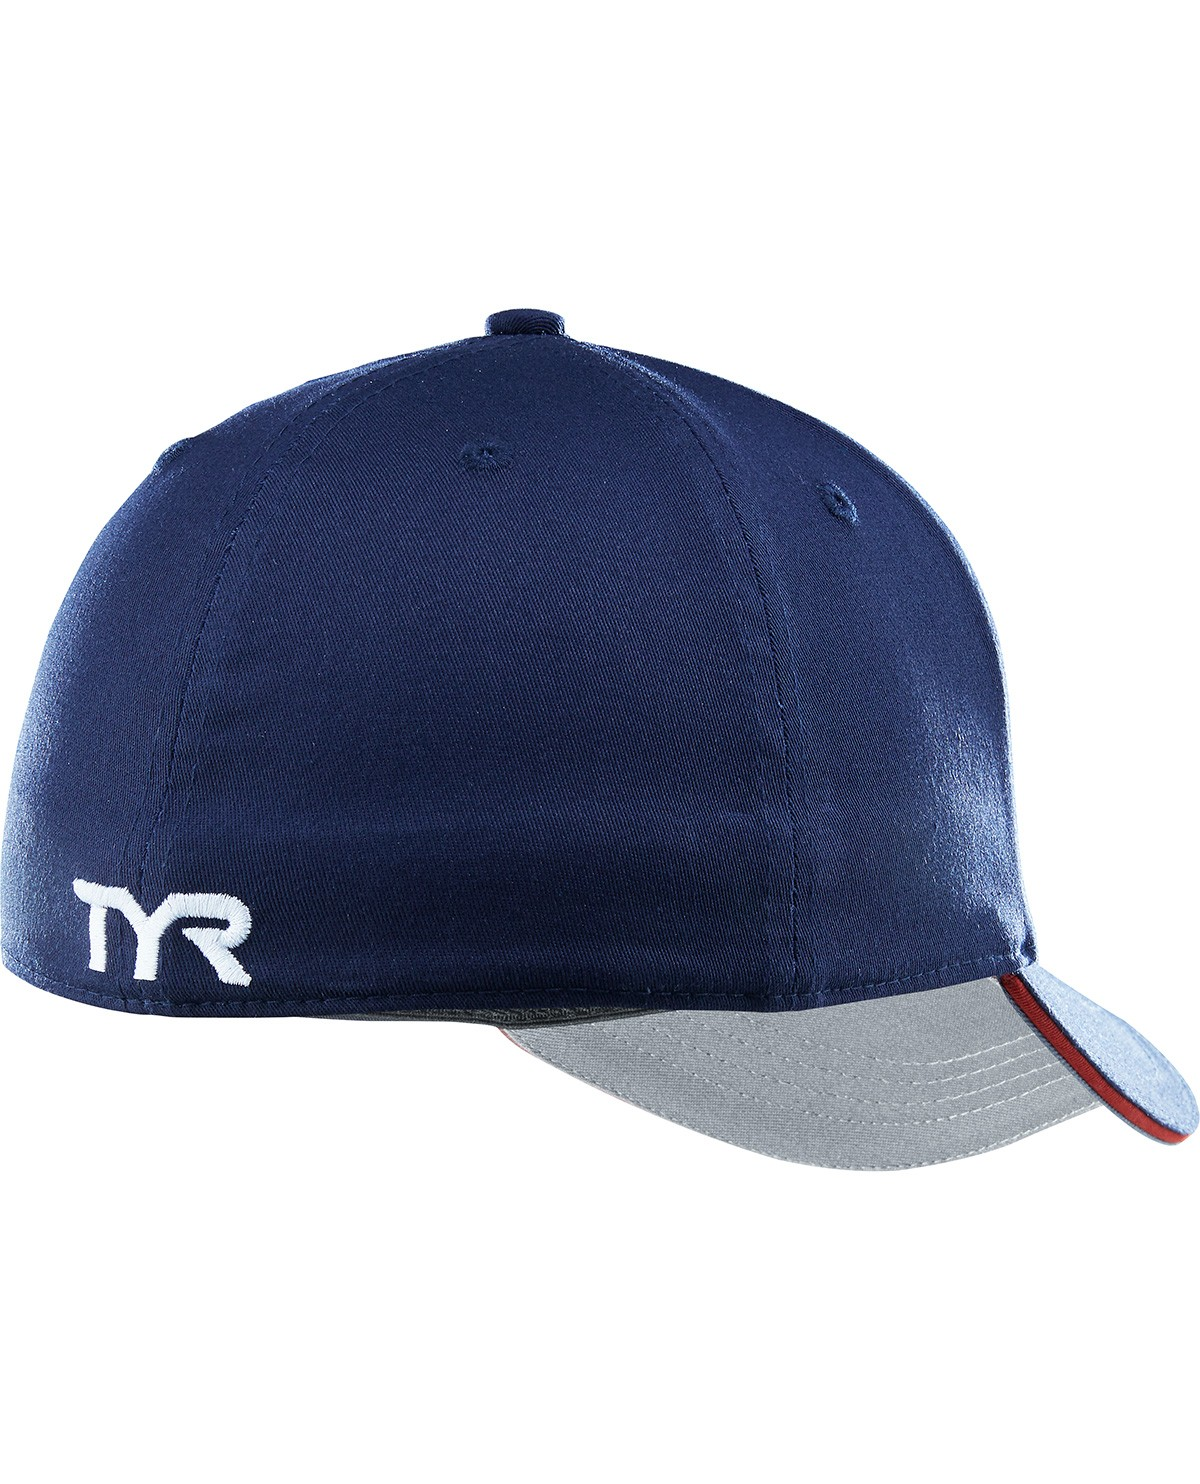 c76484bd87706 ... TYR A.I.F. Glory Fitted Hat